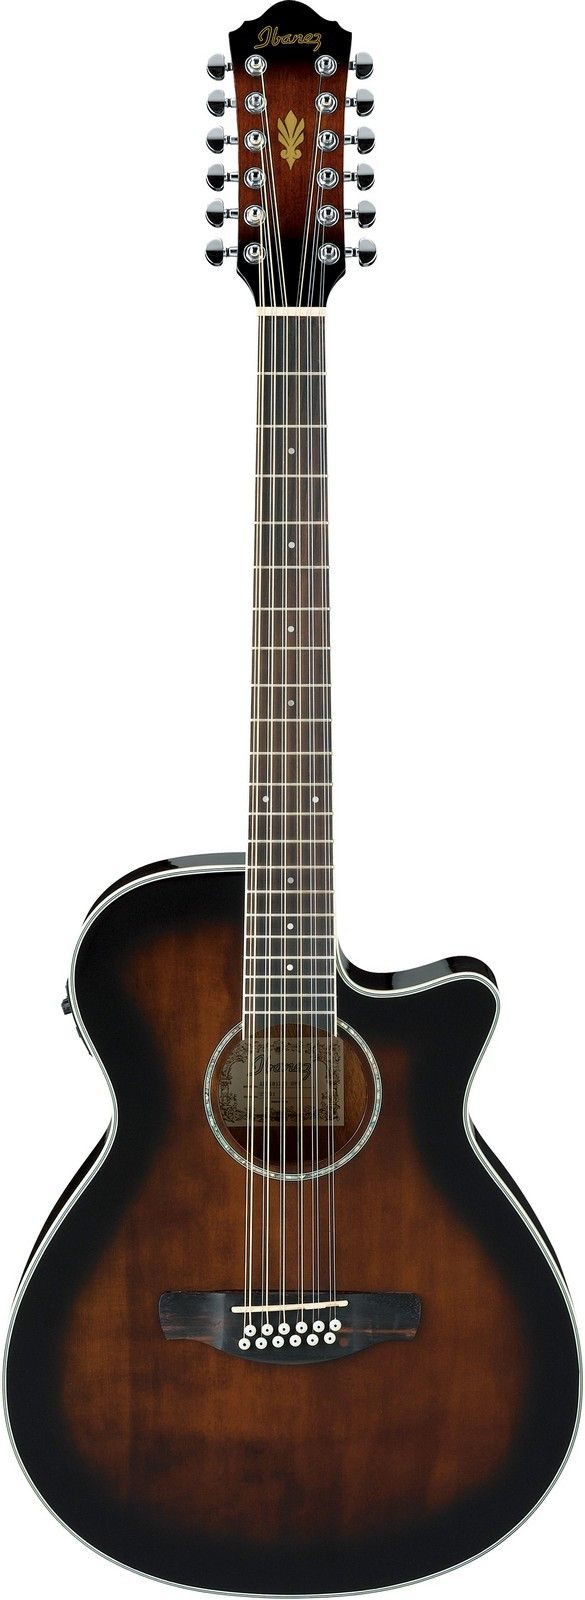 the 25 best 12 string guitar ideas on pinterest beautiful guitars electric guitar and amp. Black Bedroom Furniture Sets. Home Design Ideas